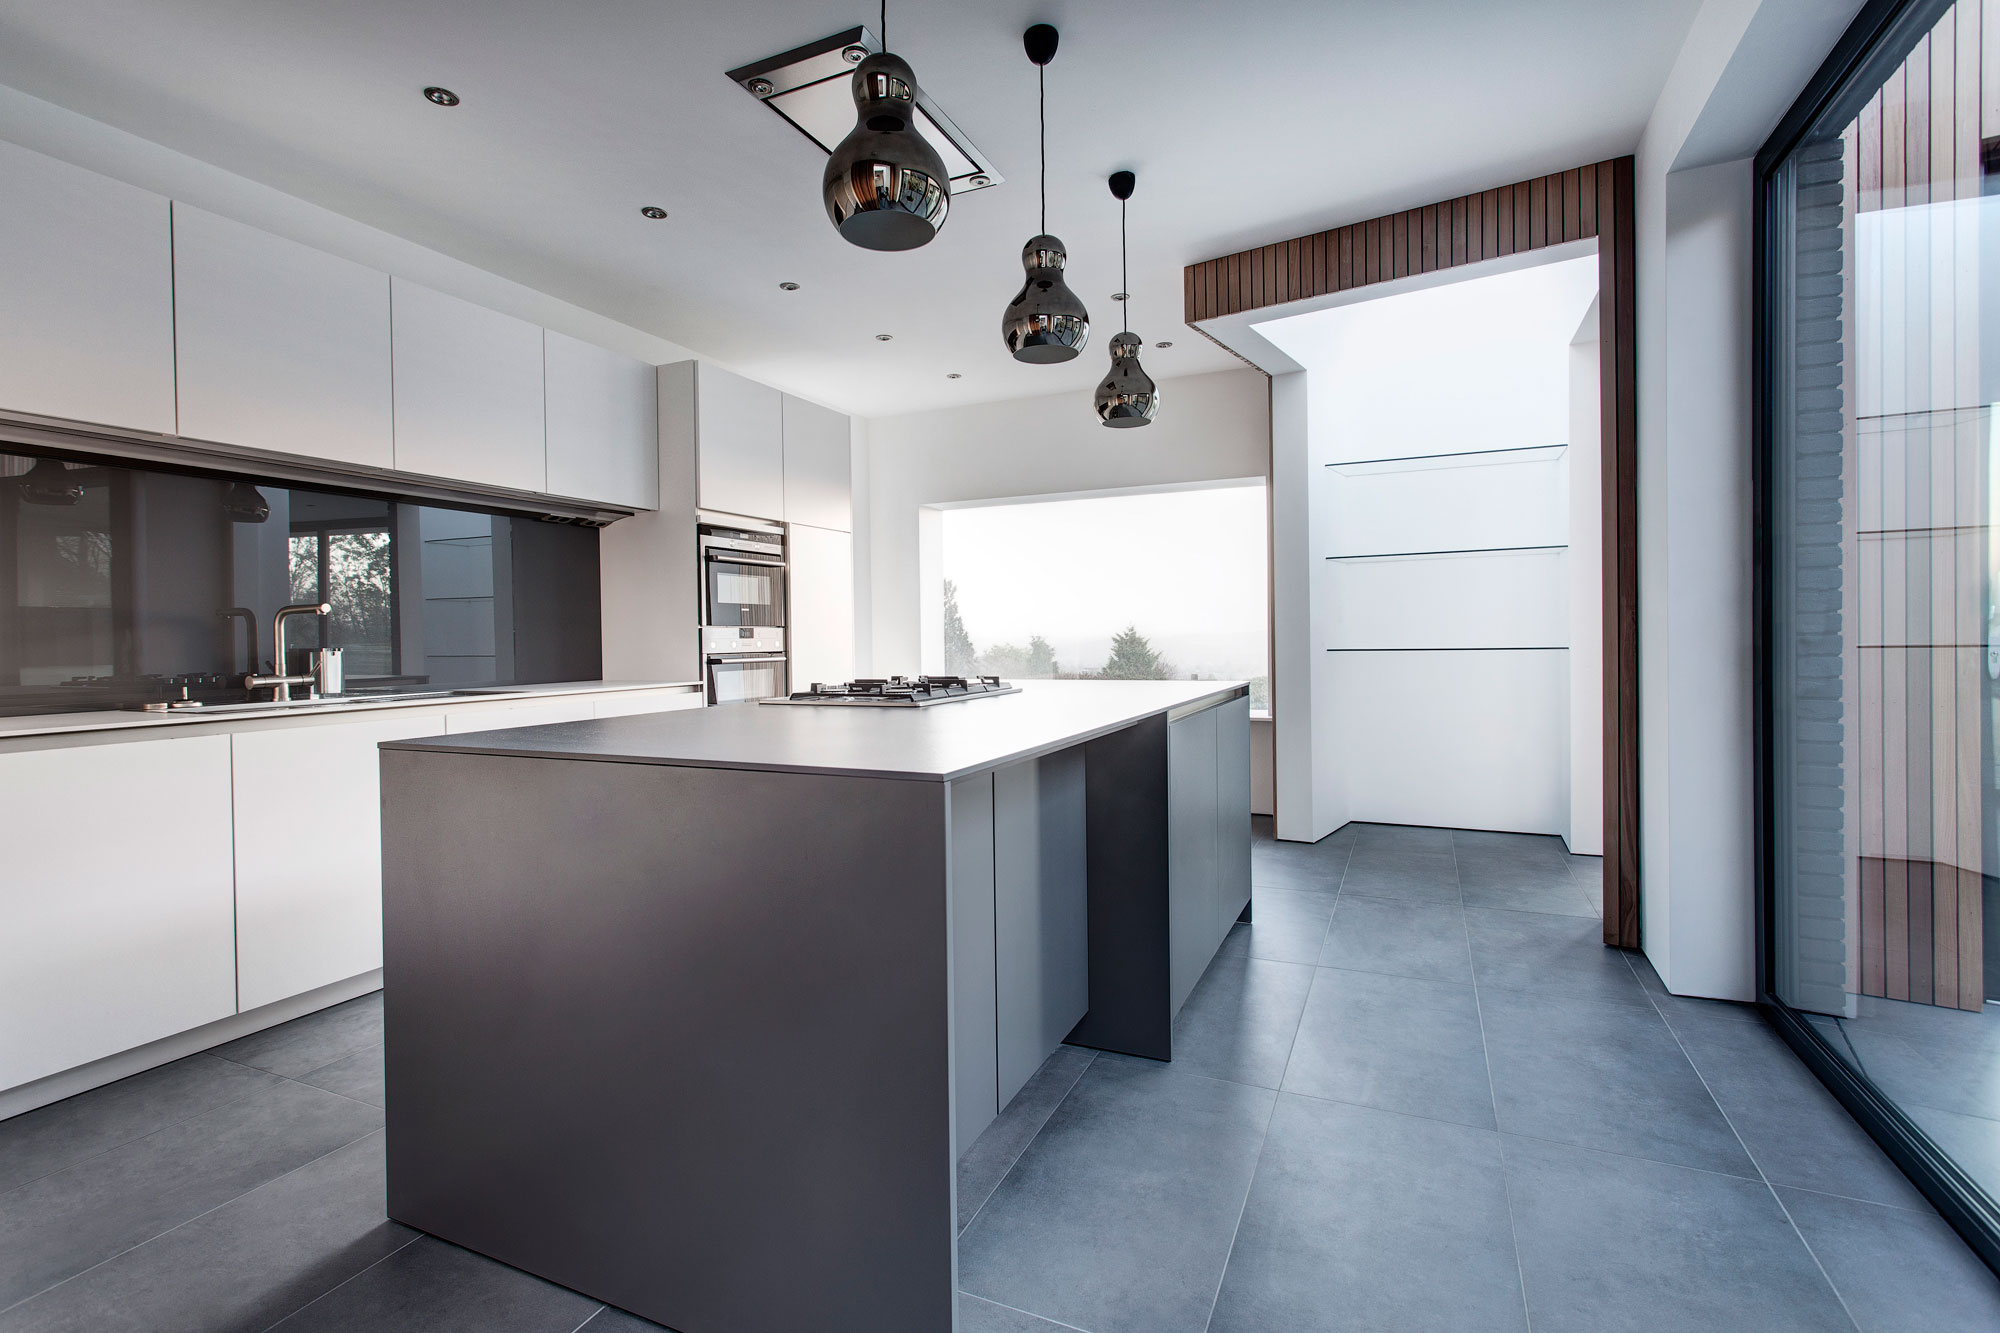 Grey And White Kitchen With Island white & grey kitchen, island, pendant lighting, modern home in